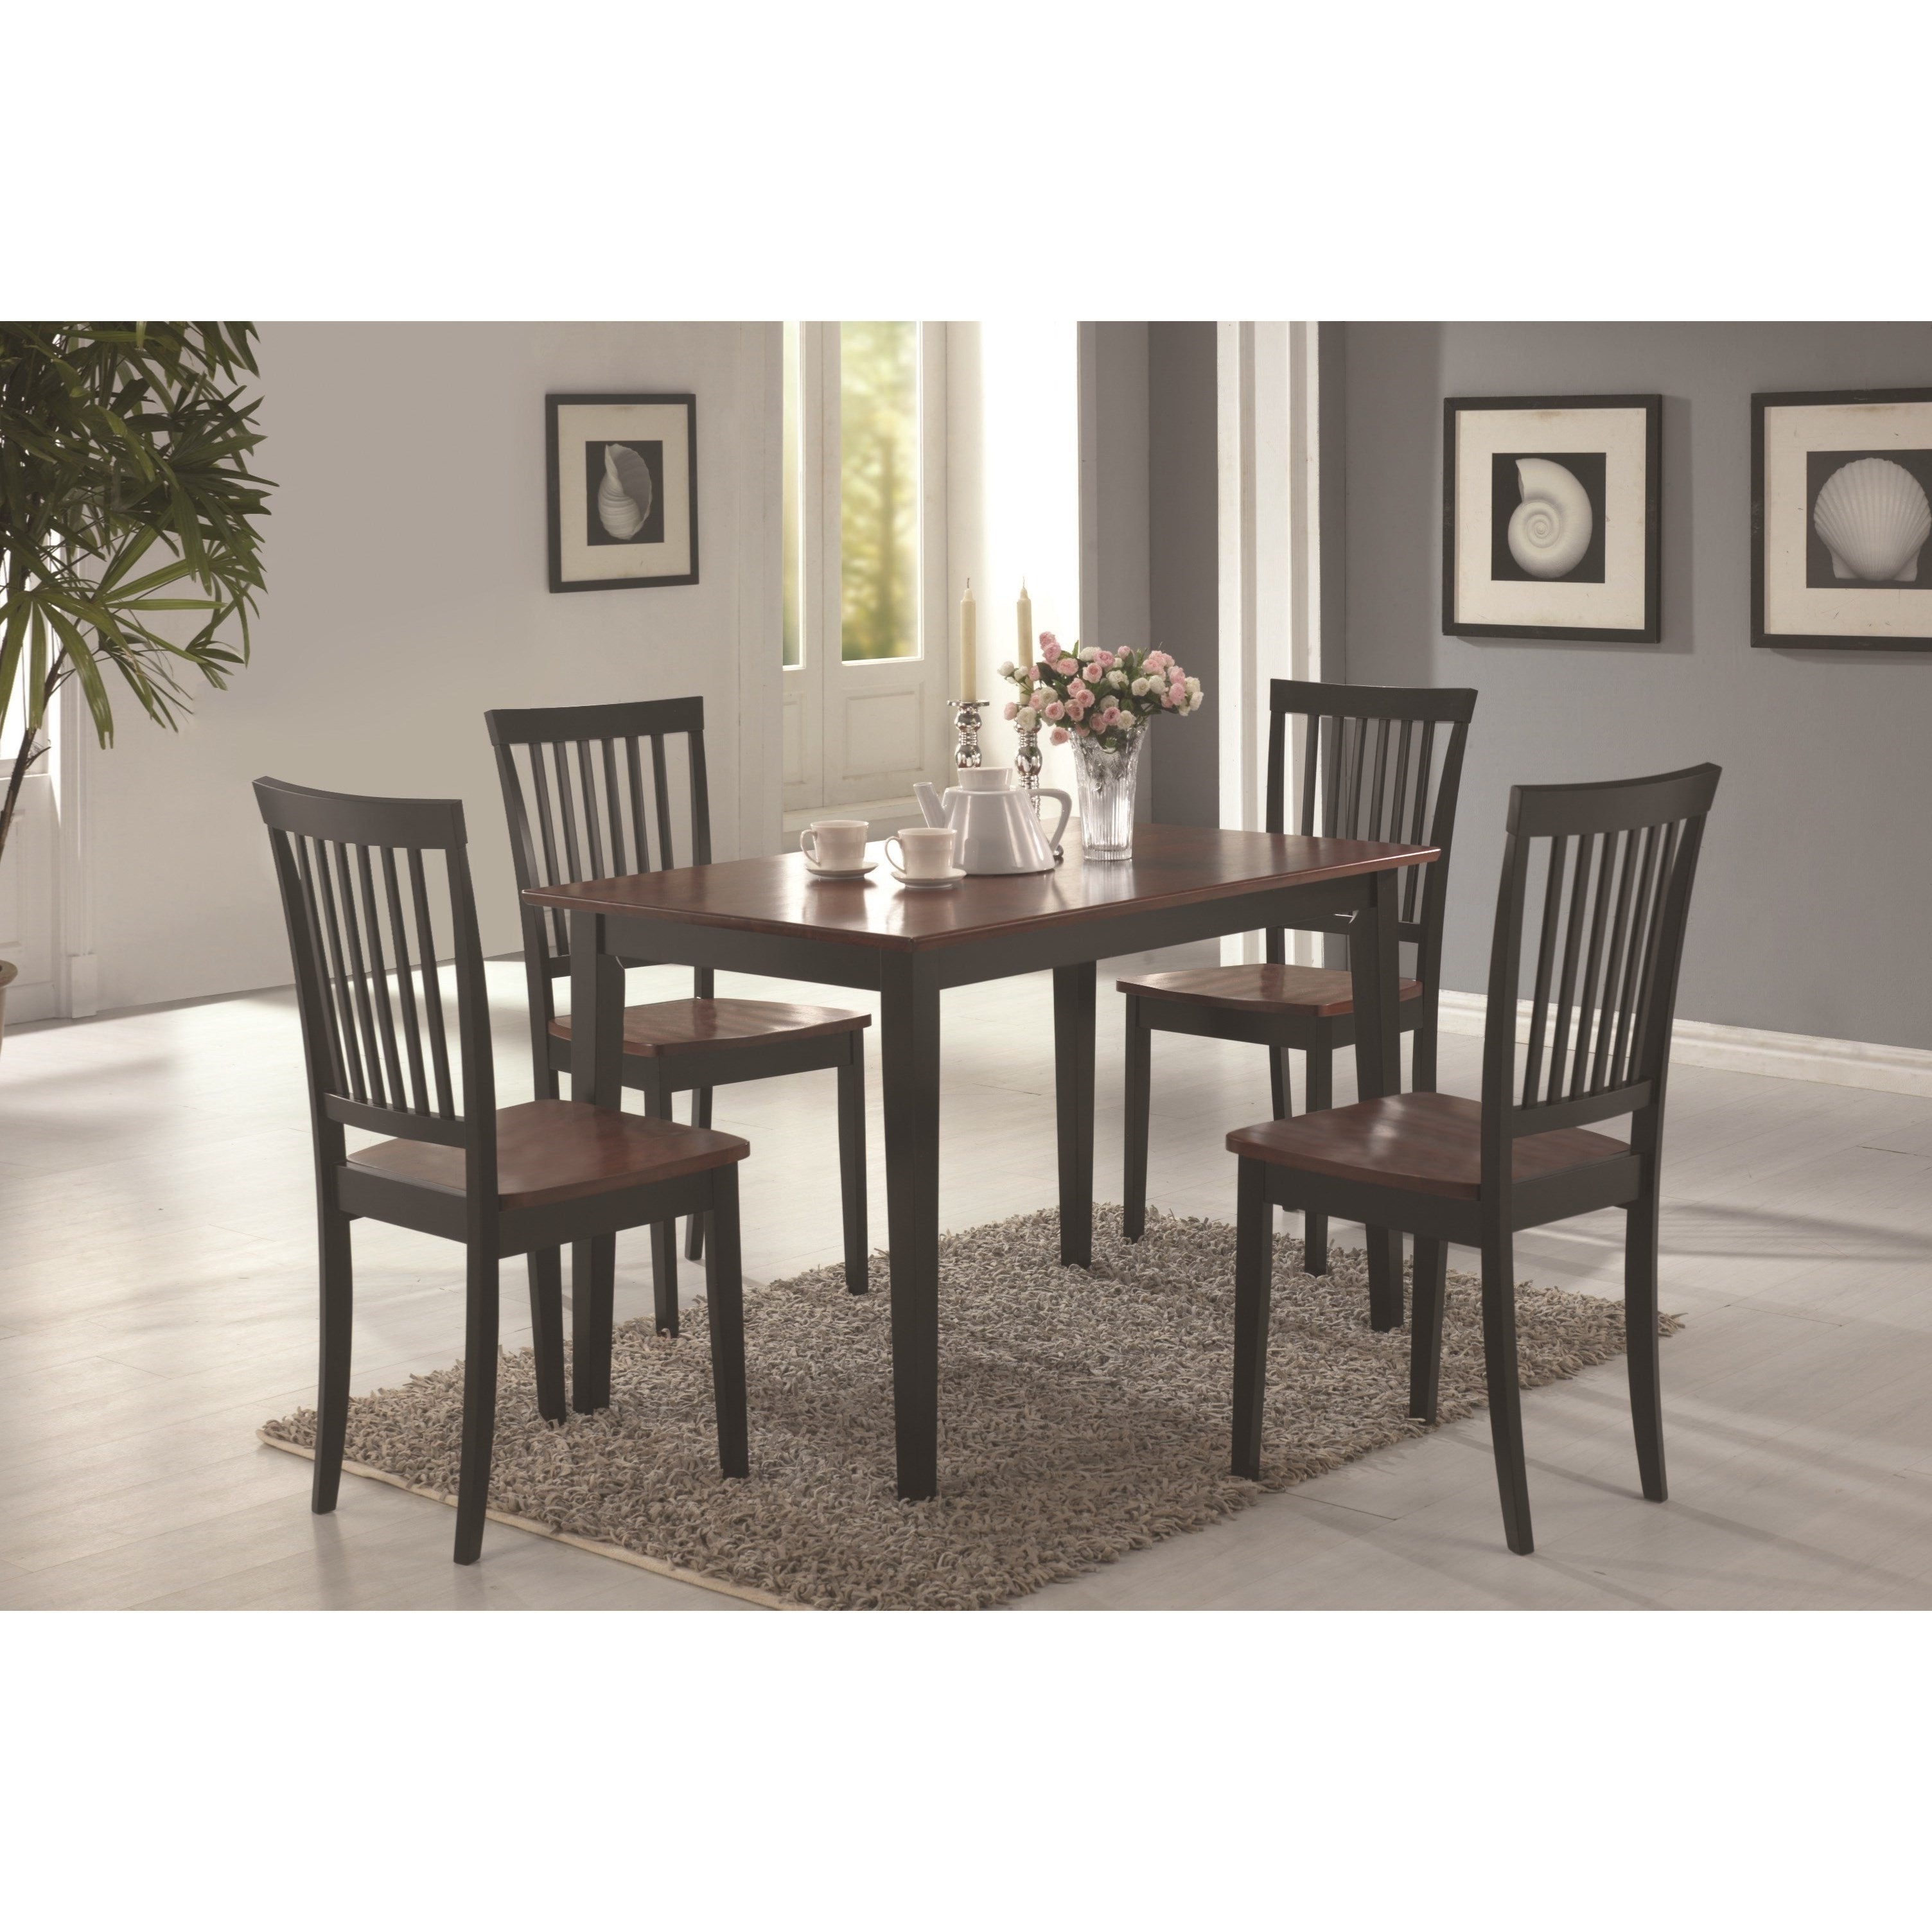 Wayfair With Regard To Most Popular Candice Ii 7 Piece Extension Rectangular Dining Sets With Slat Back Side Chairs (View 9 of 25)